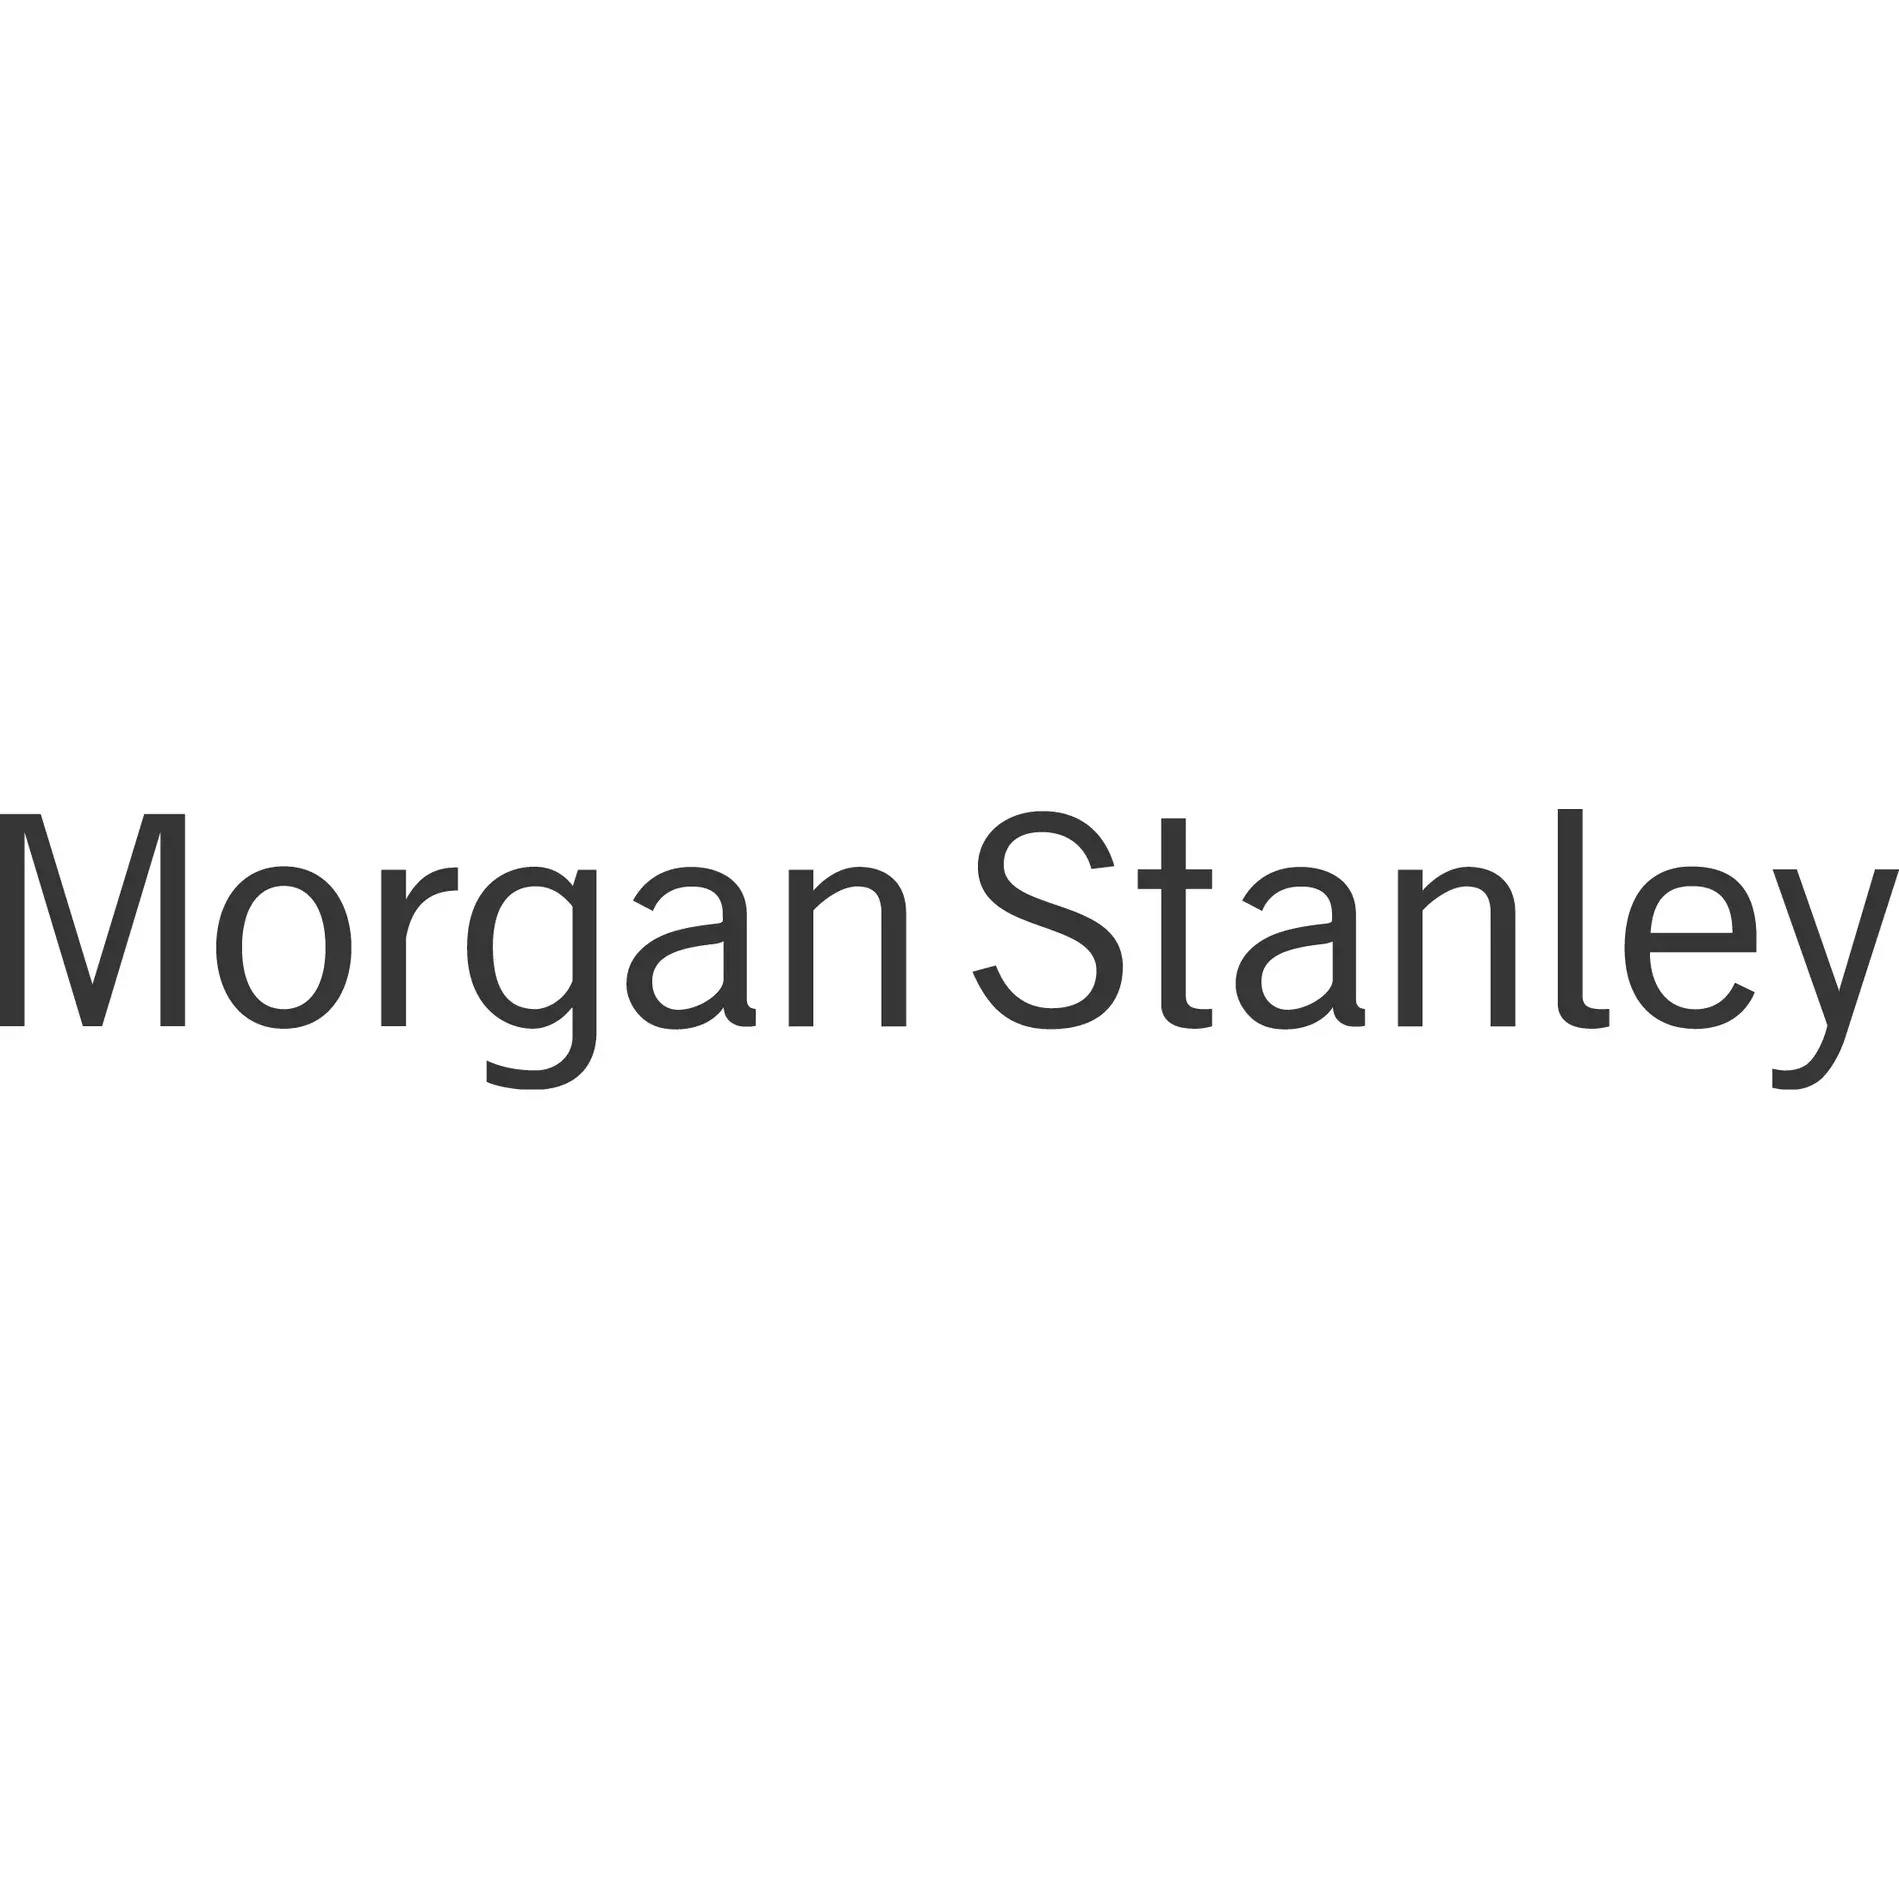 The Gandolfo/Lindia Group - Morgan Stanley